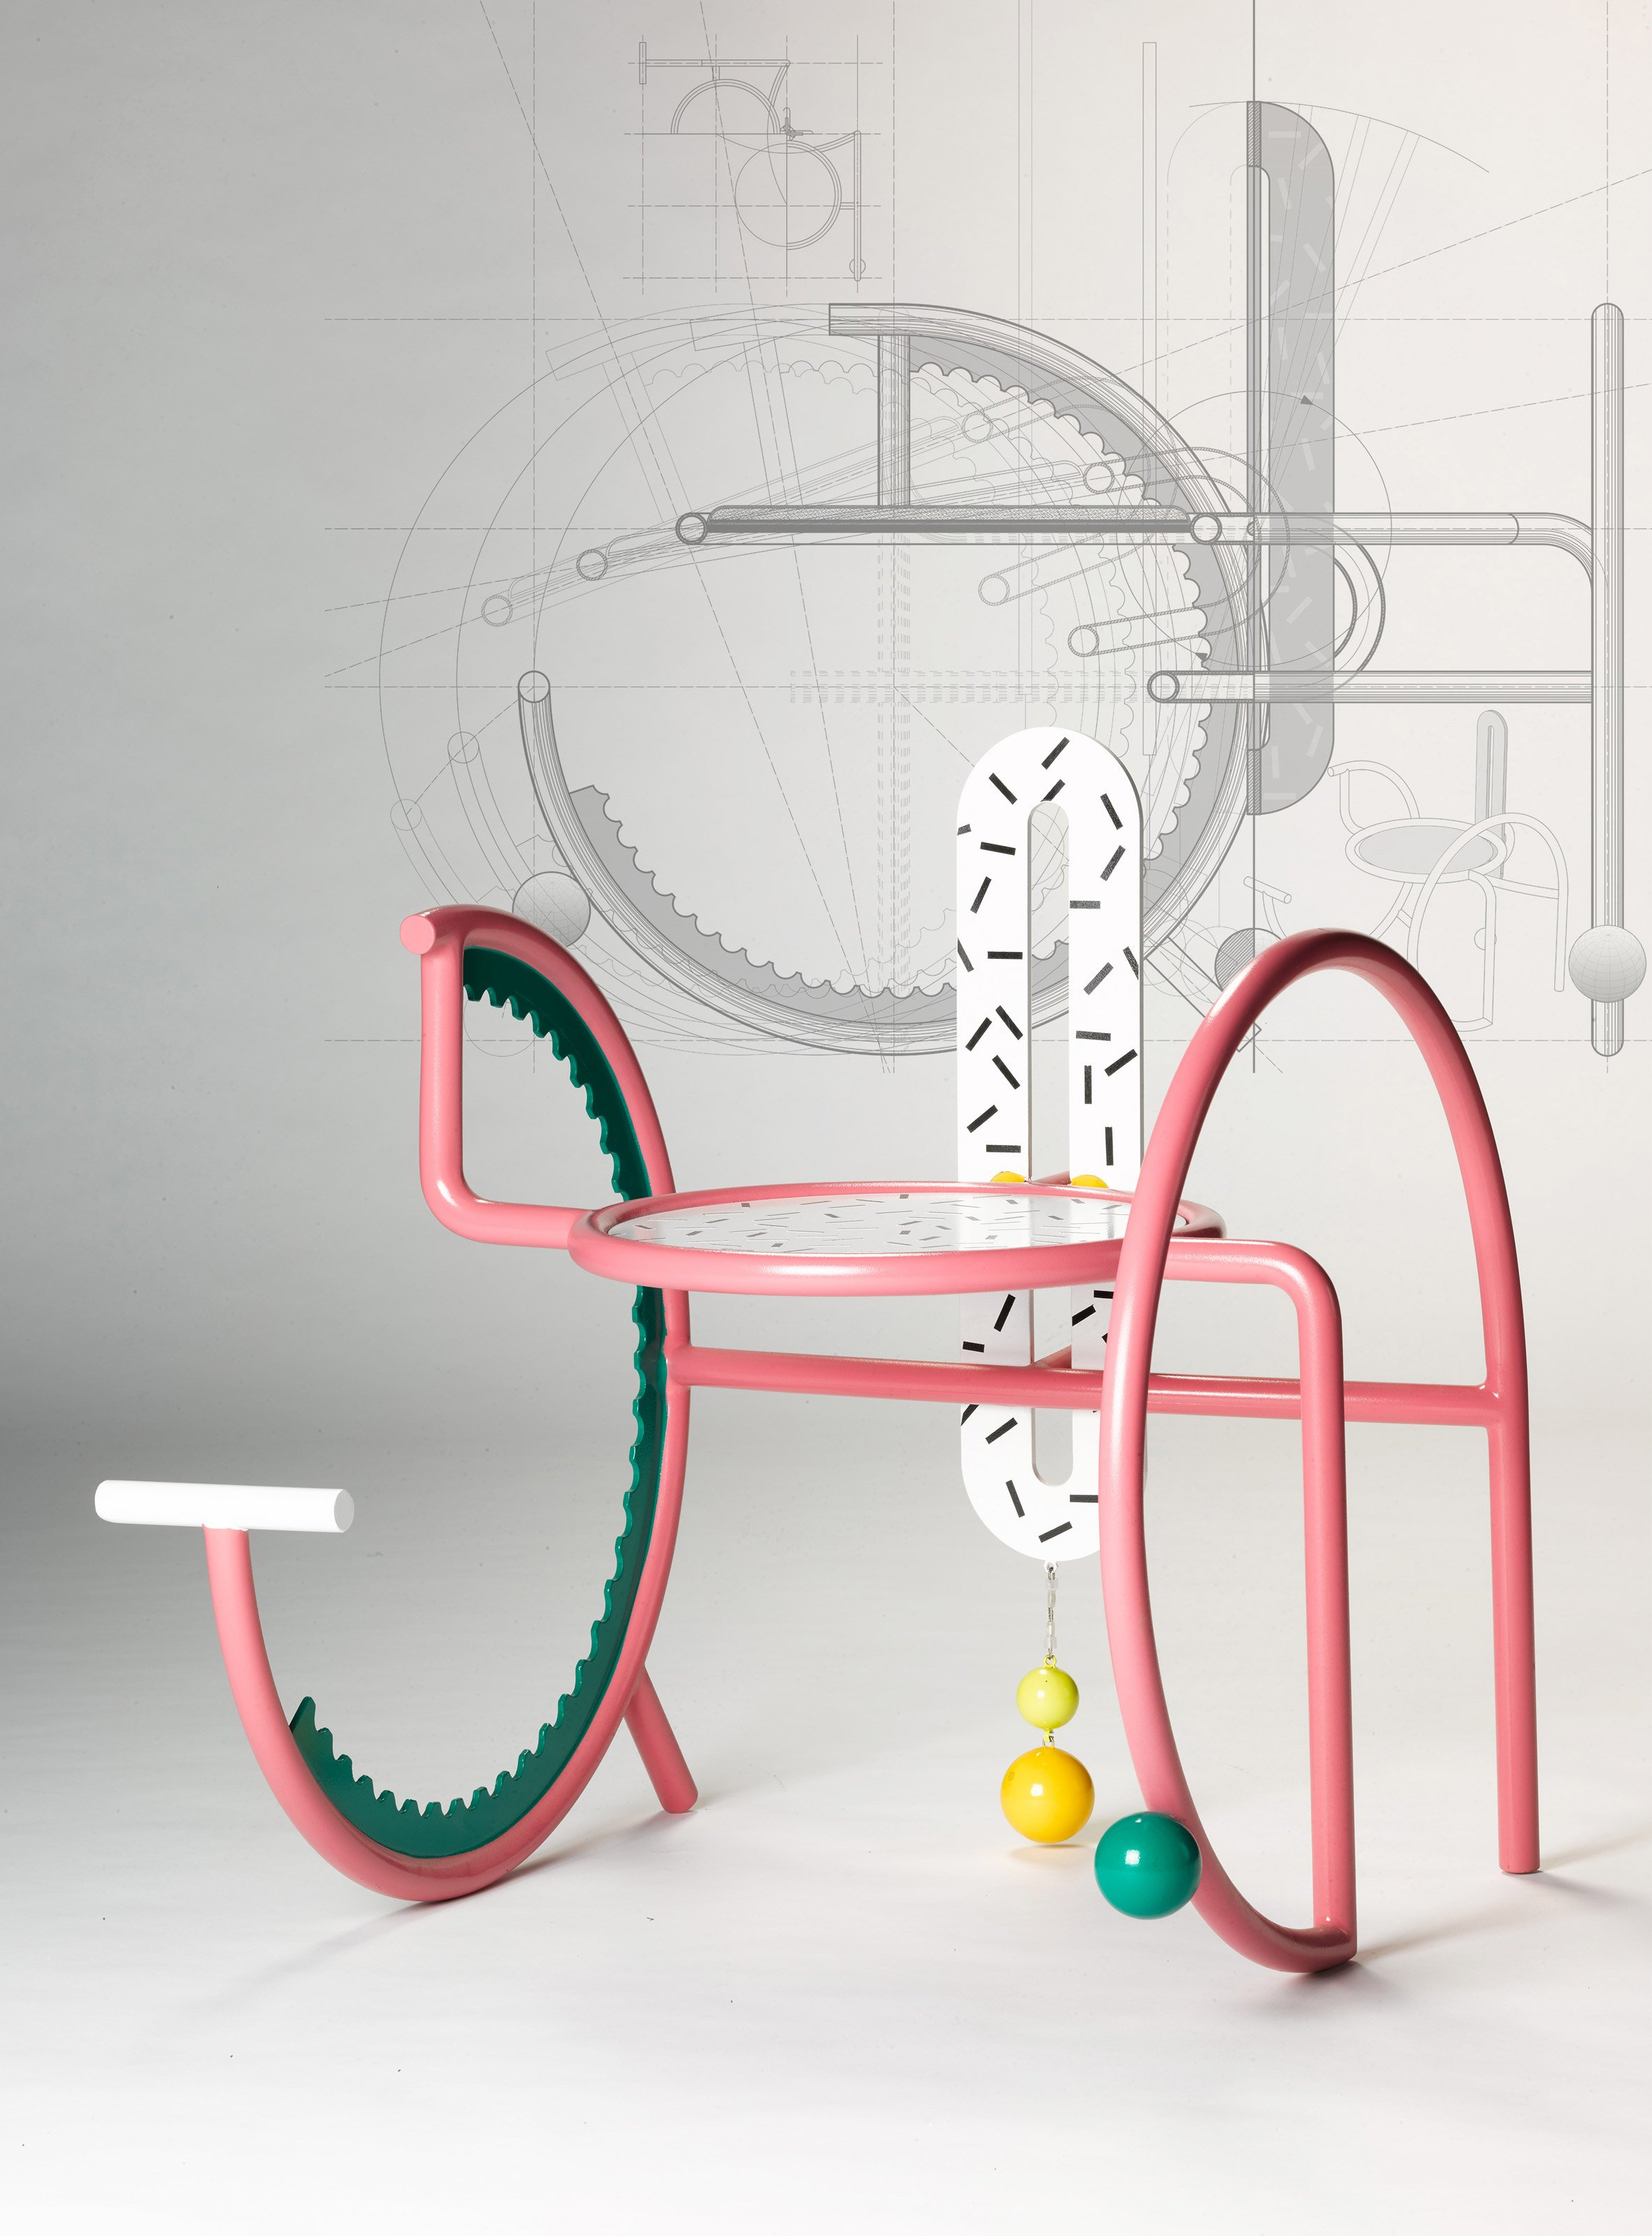 Hu Yuming creates chairs designed to satisfy the restless seated body